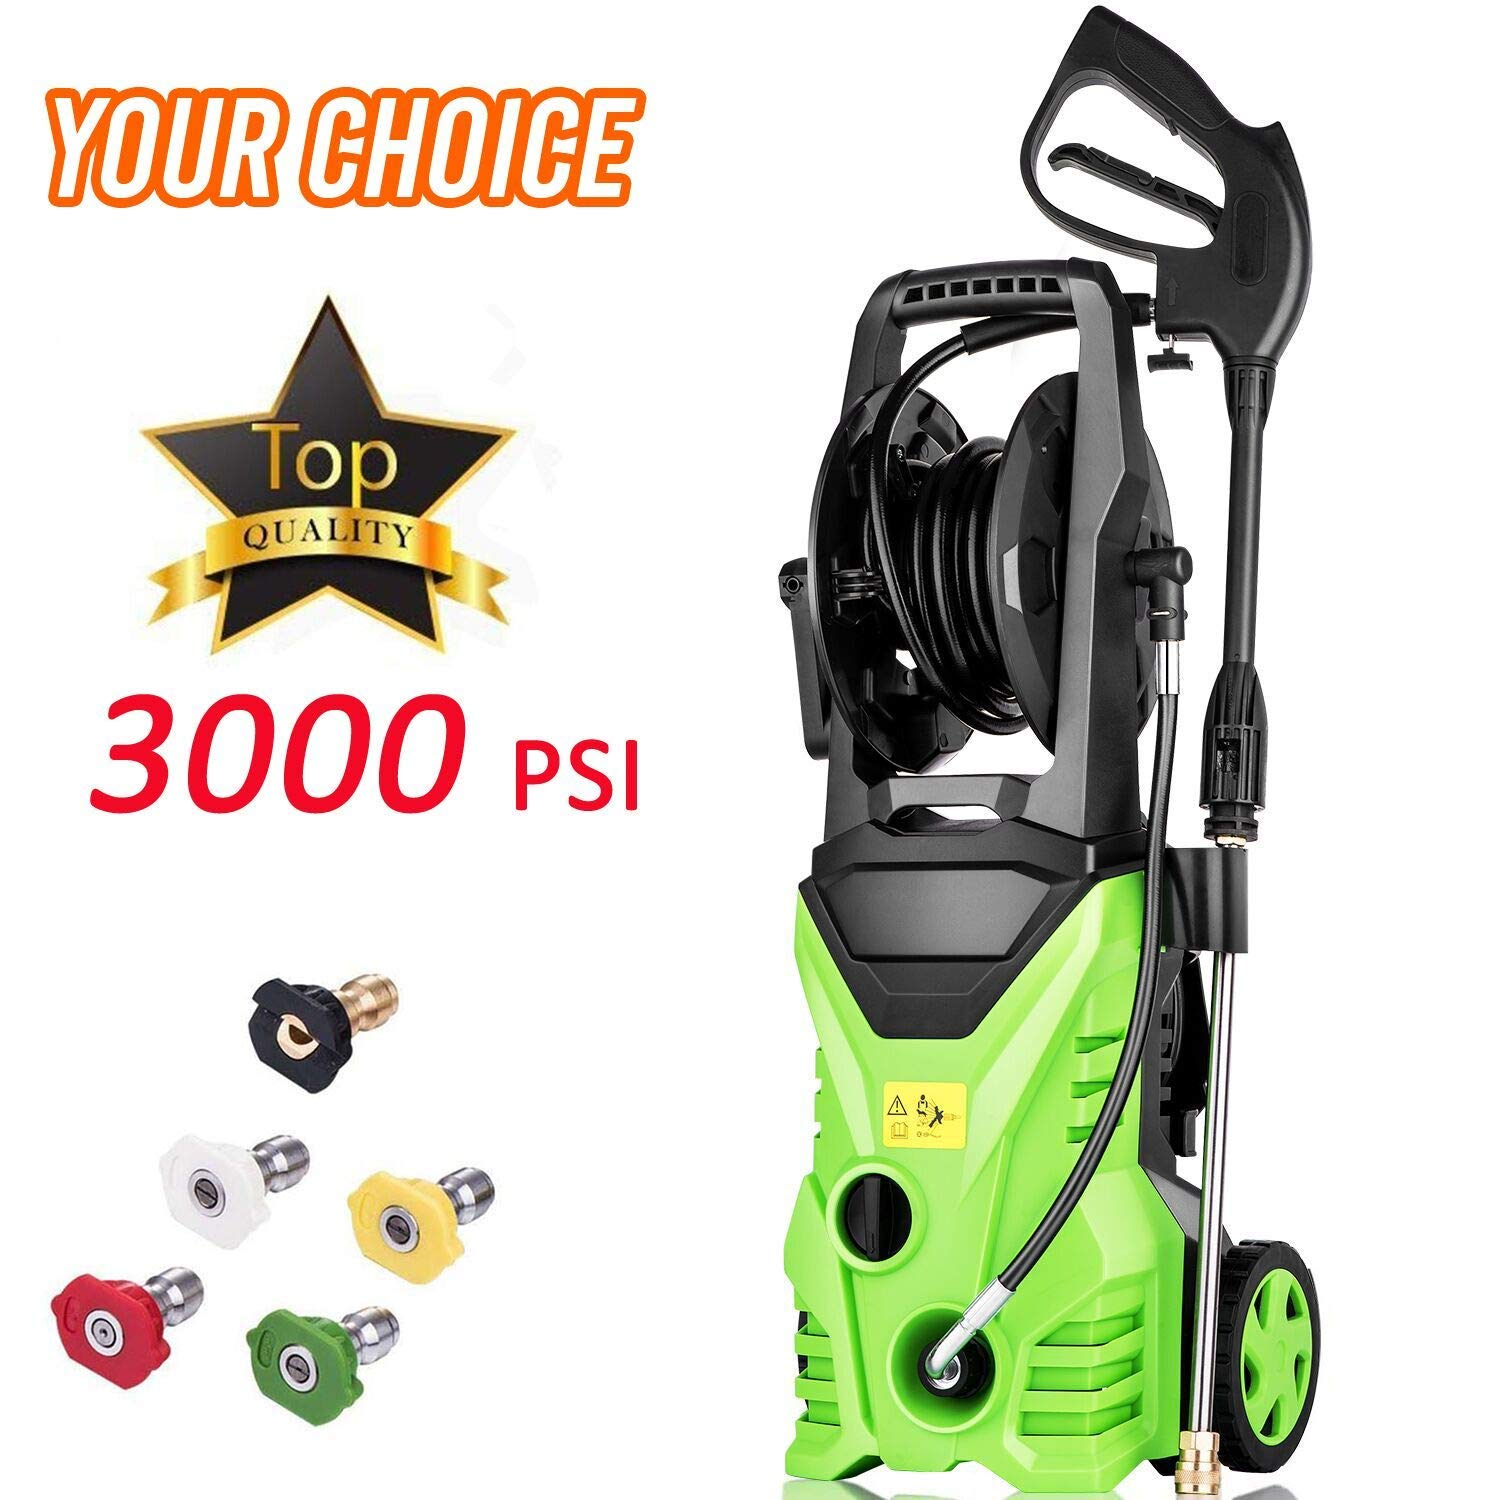 Homdox Electric High Pressure Washer 3000PSI 1.8GPM Power Pressure Washer Machine 1800W with Power Hose Gun Turbo Wand,5 Interchangeable Nozzles and Rolling Wheels